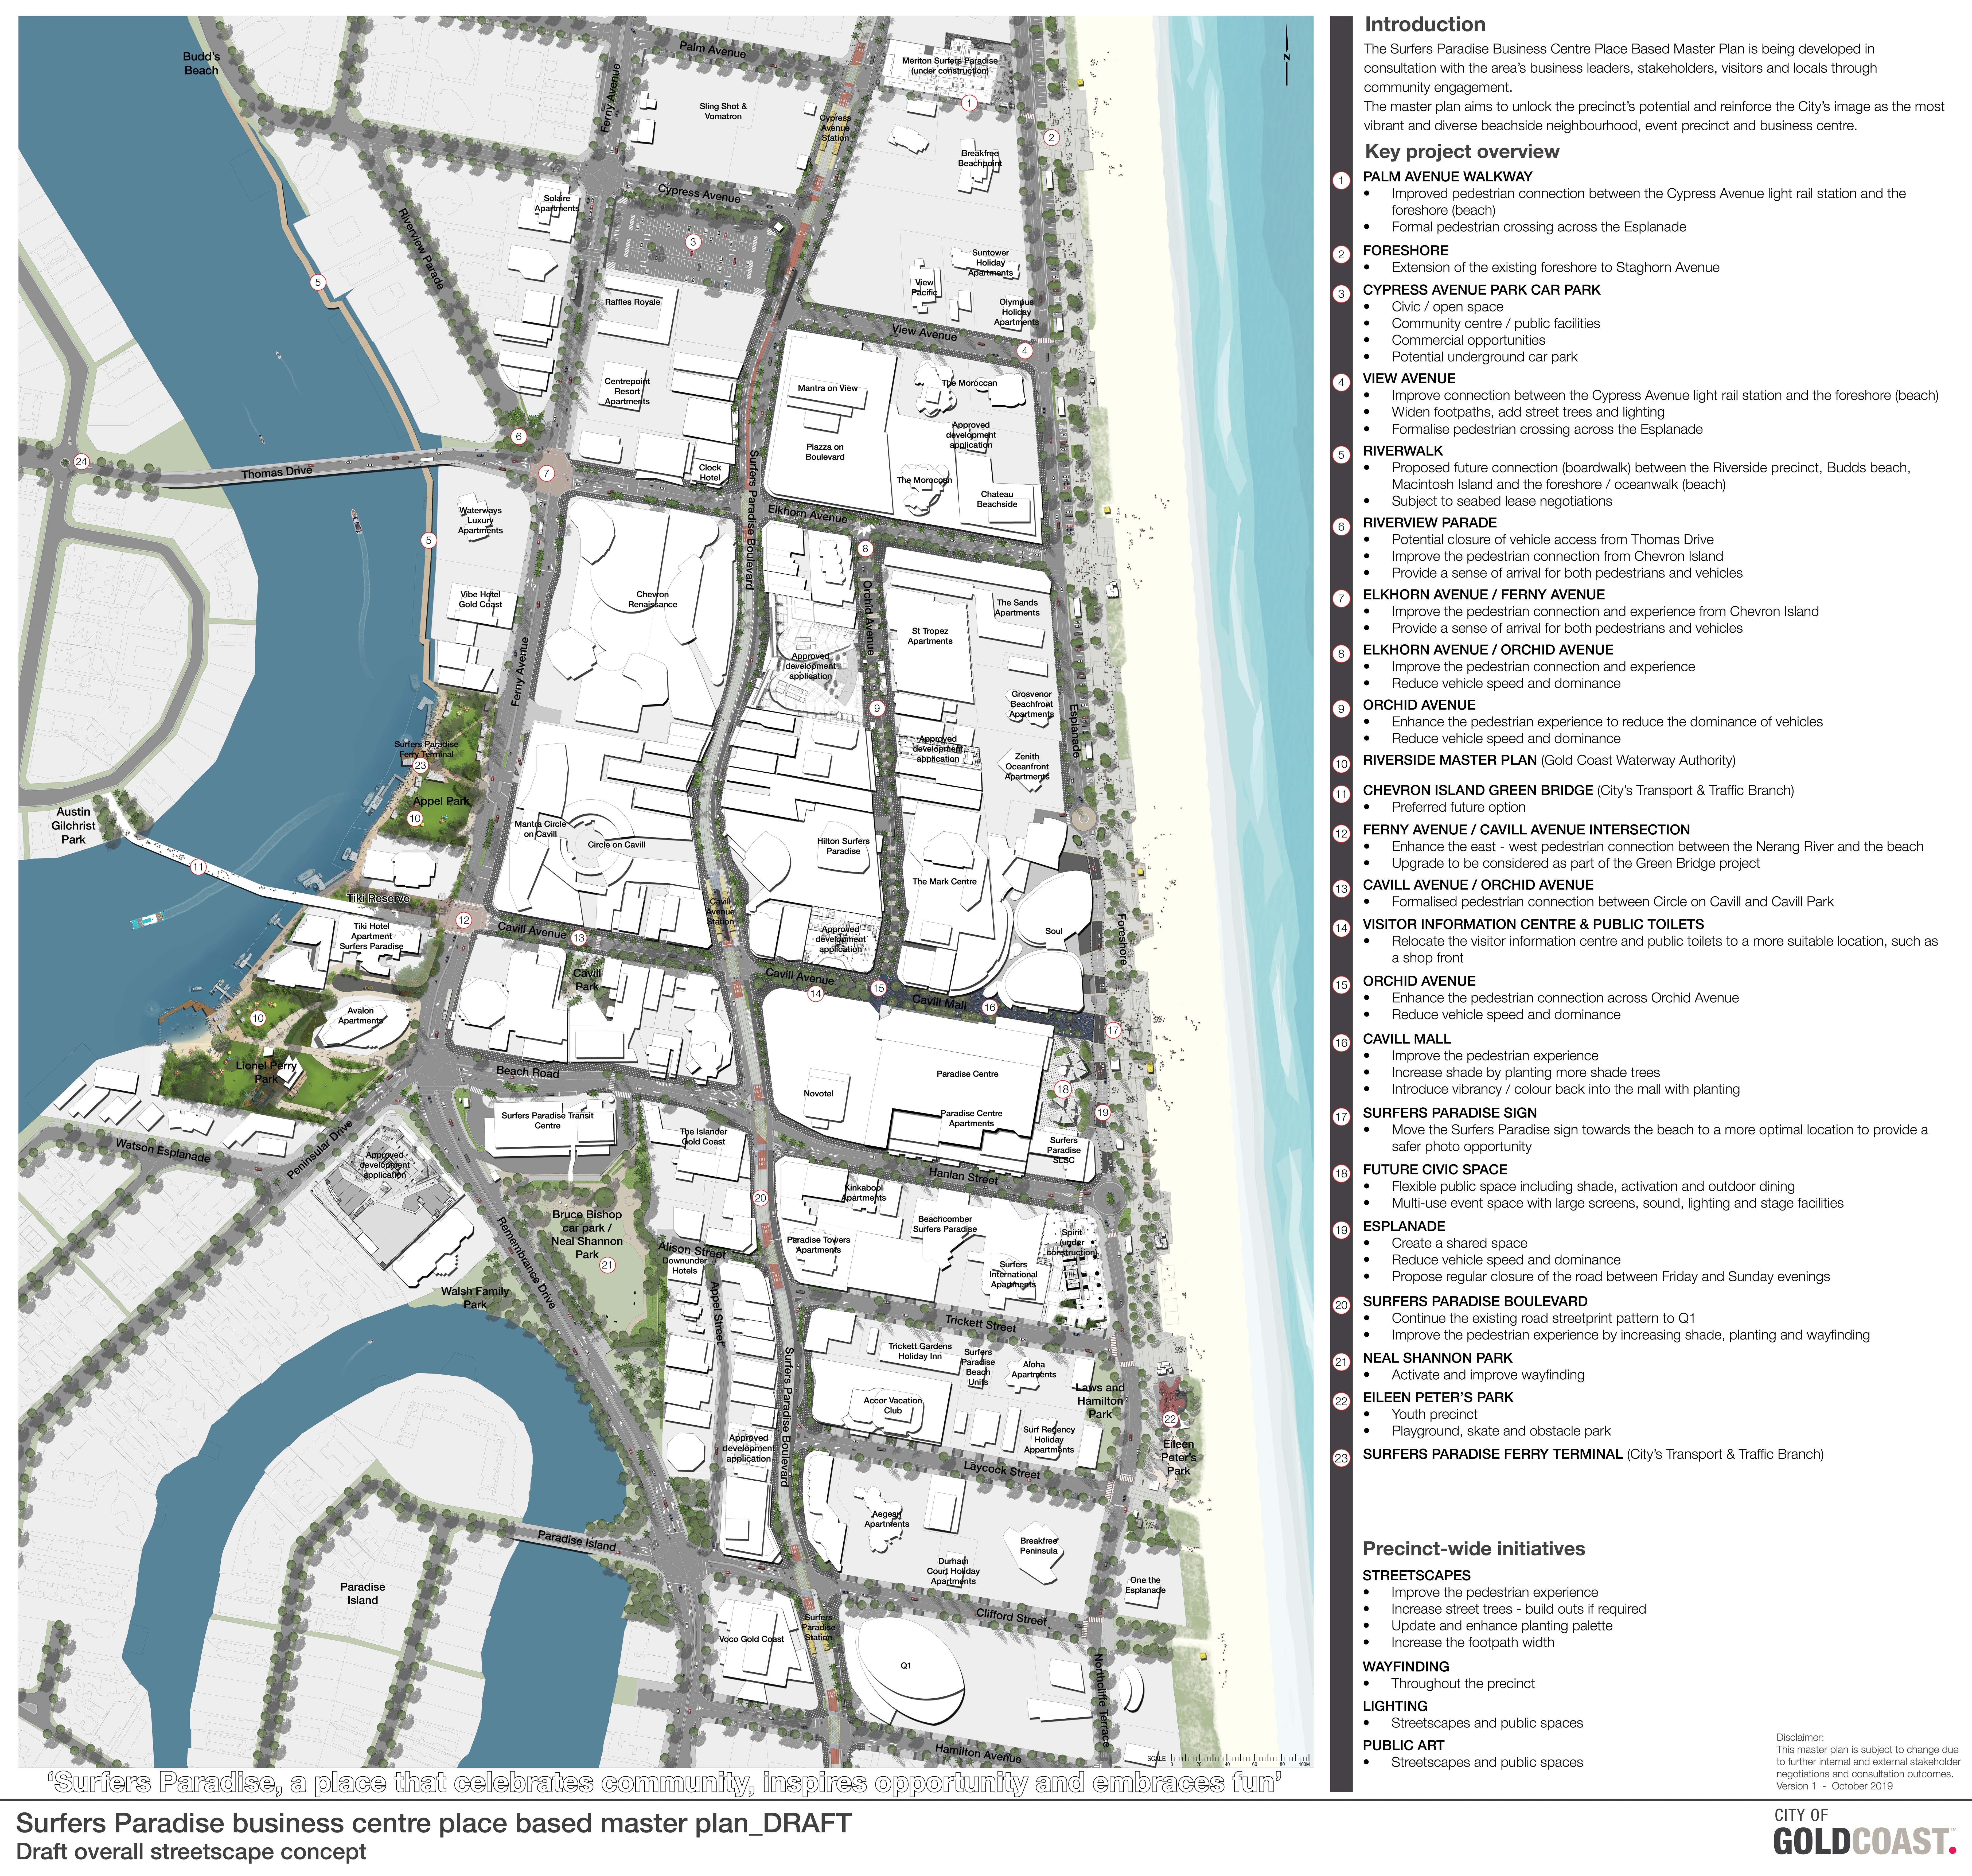 Surfers Paradise business centre place based master plan